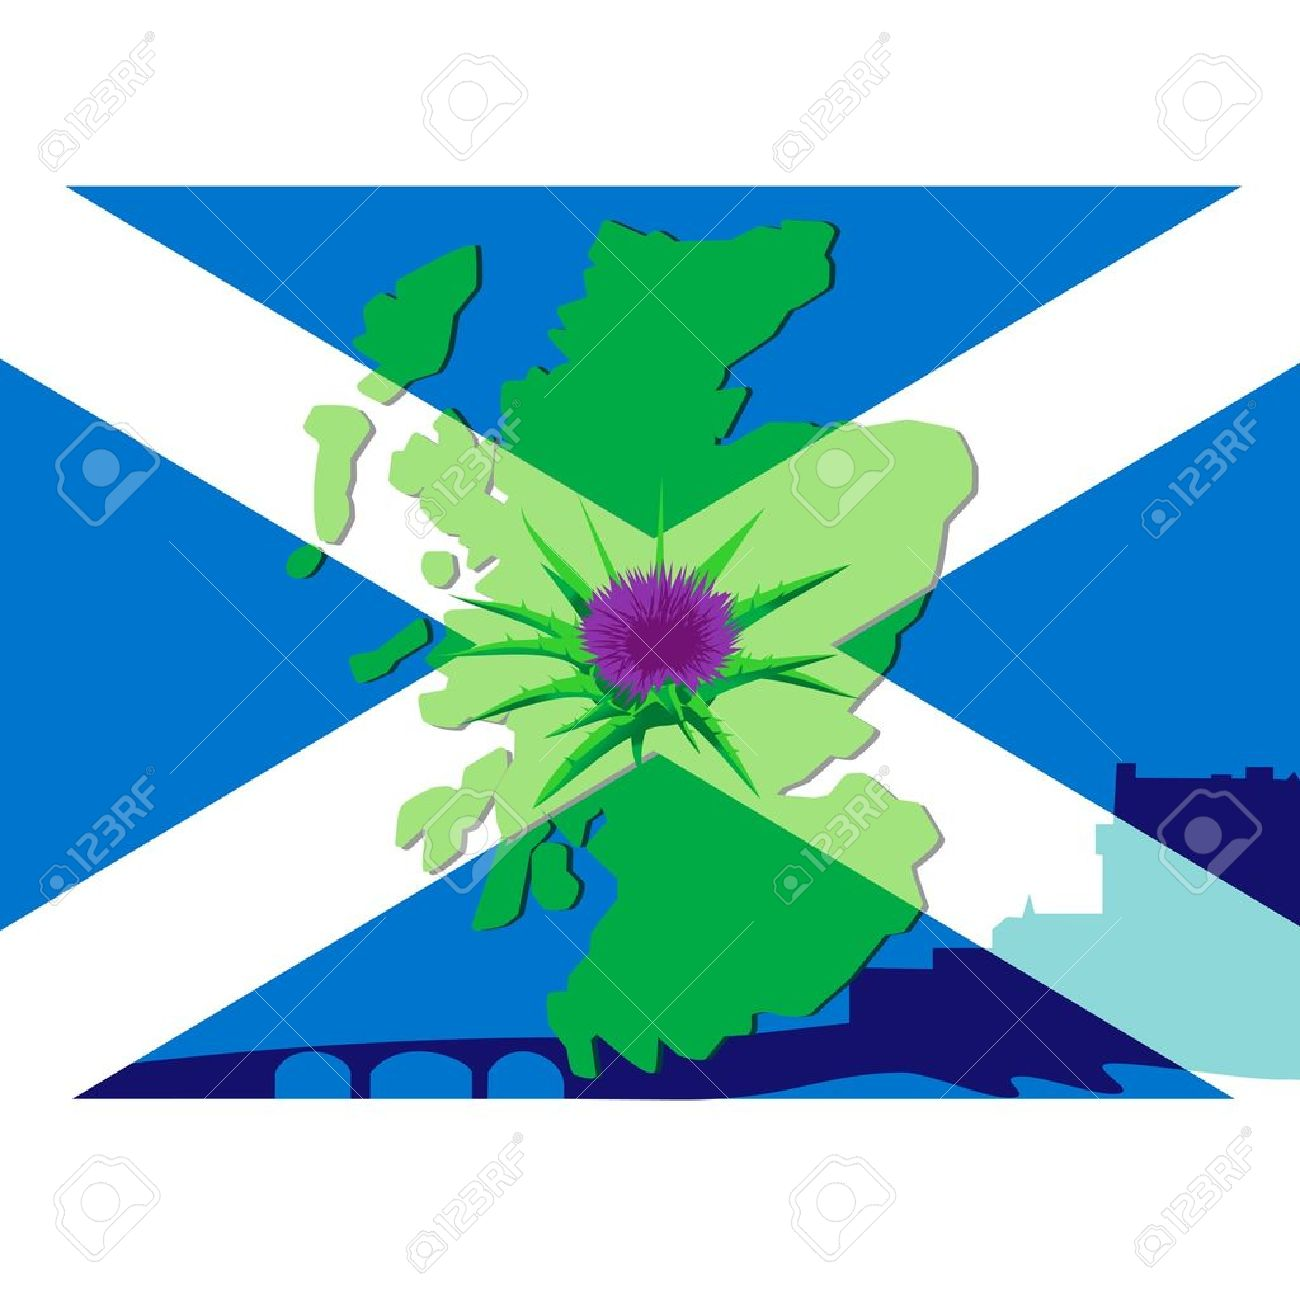 thistle flower on a background silhouette maps of scotland and